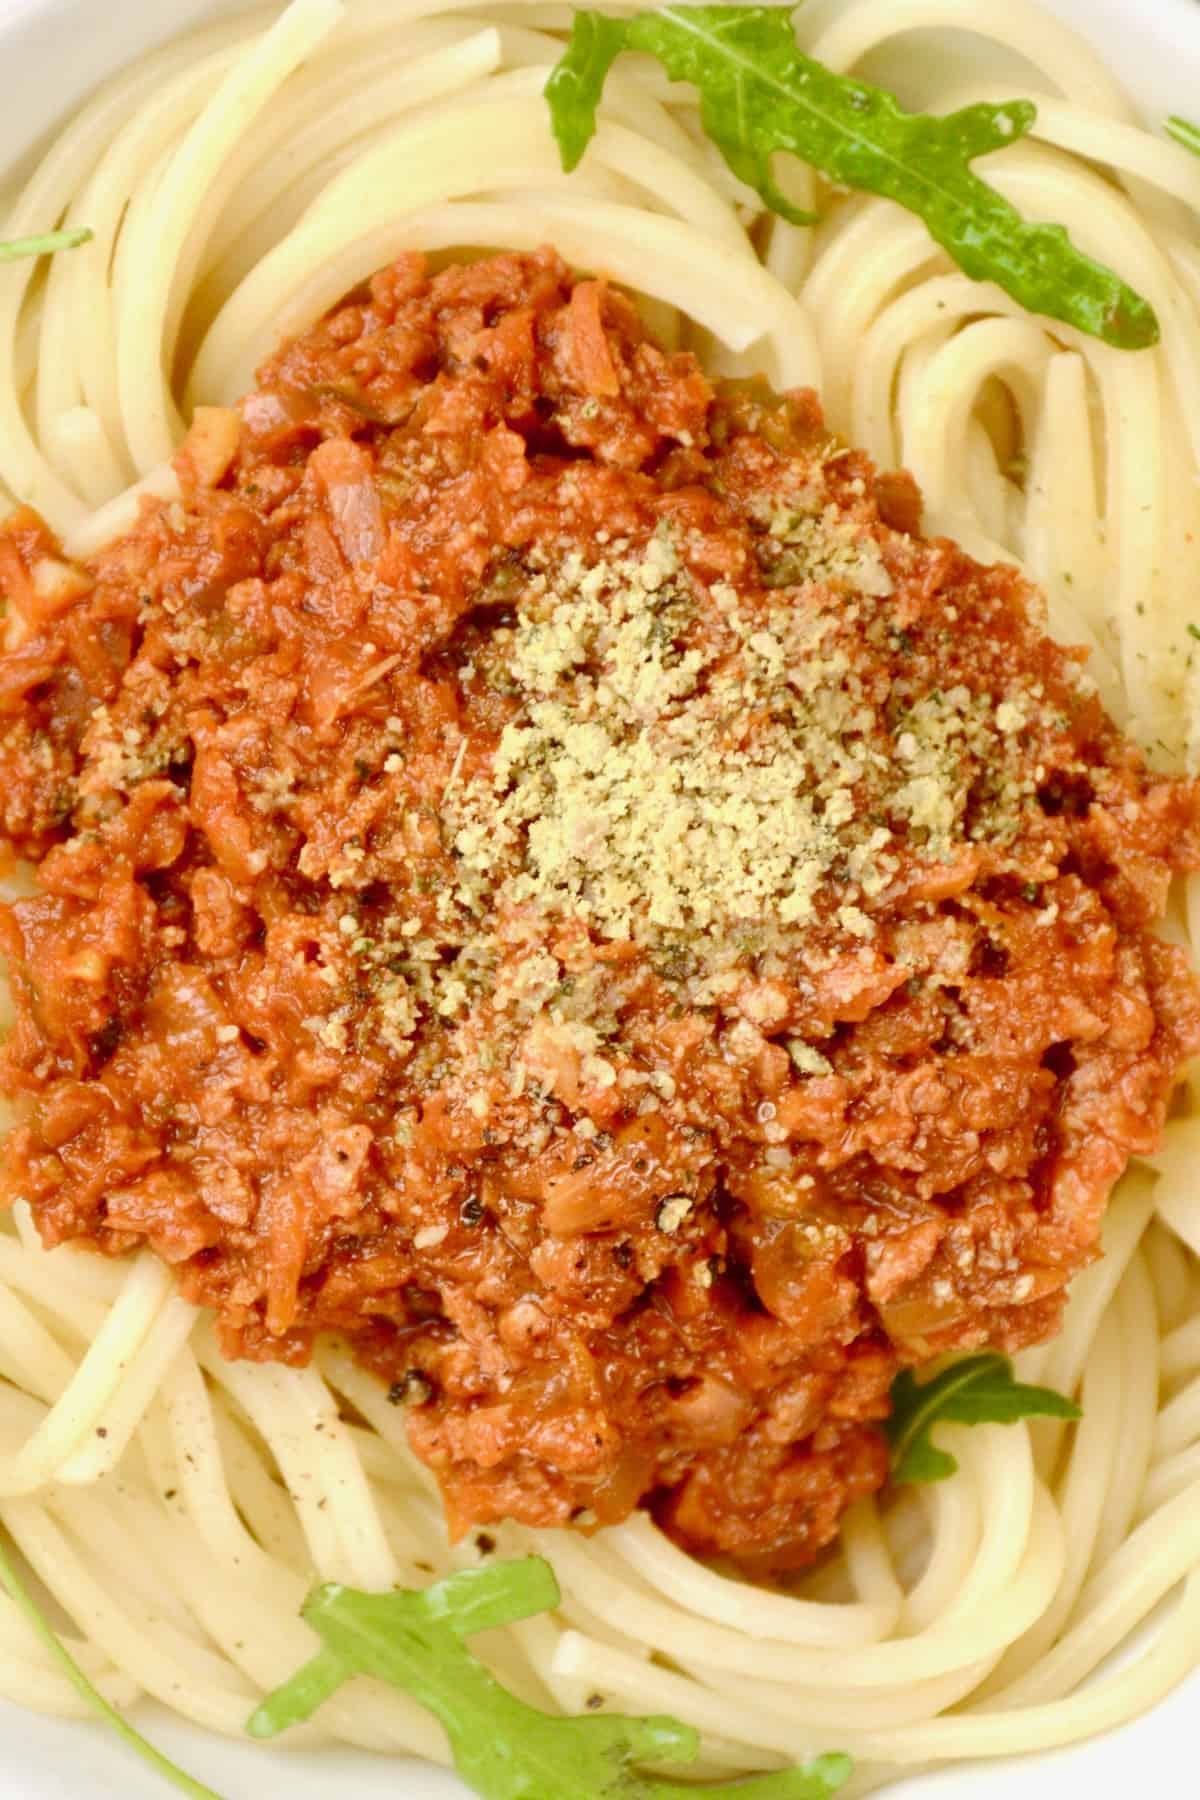 A close up of a bowl of spaghetti bolognese with a sprinkle of finely ground vegan parmesan preparation made from sunflower seeds, nutritional yeast and seasonings...